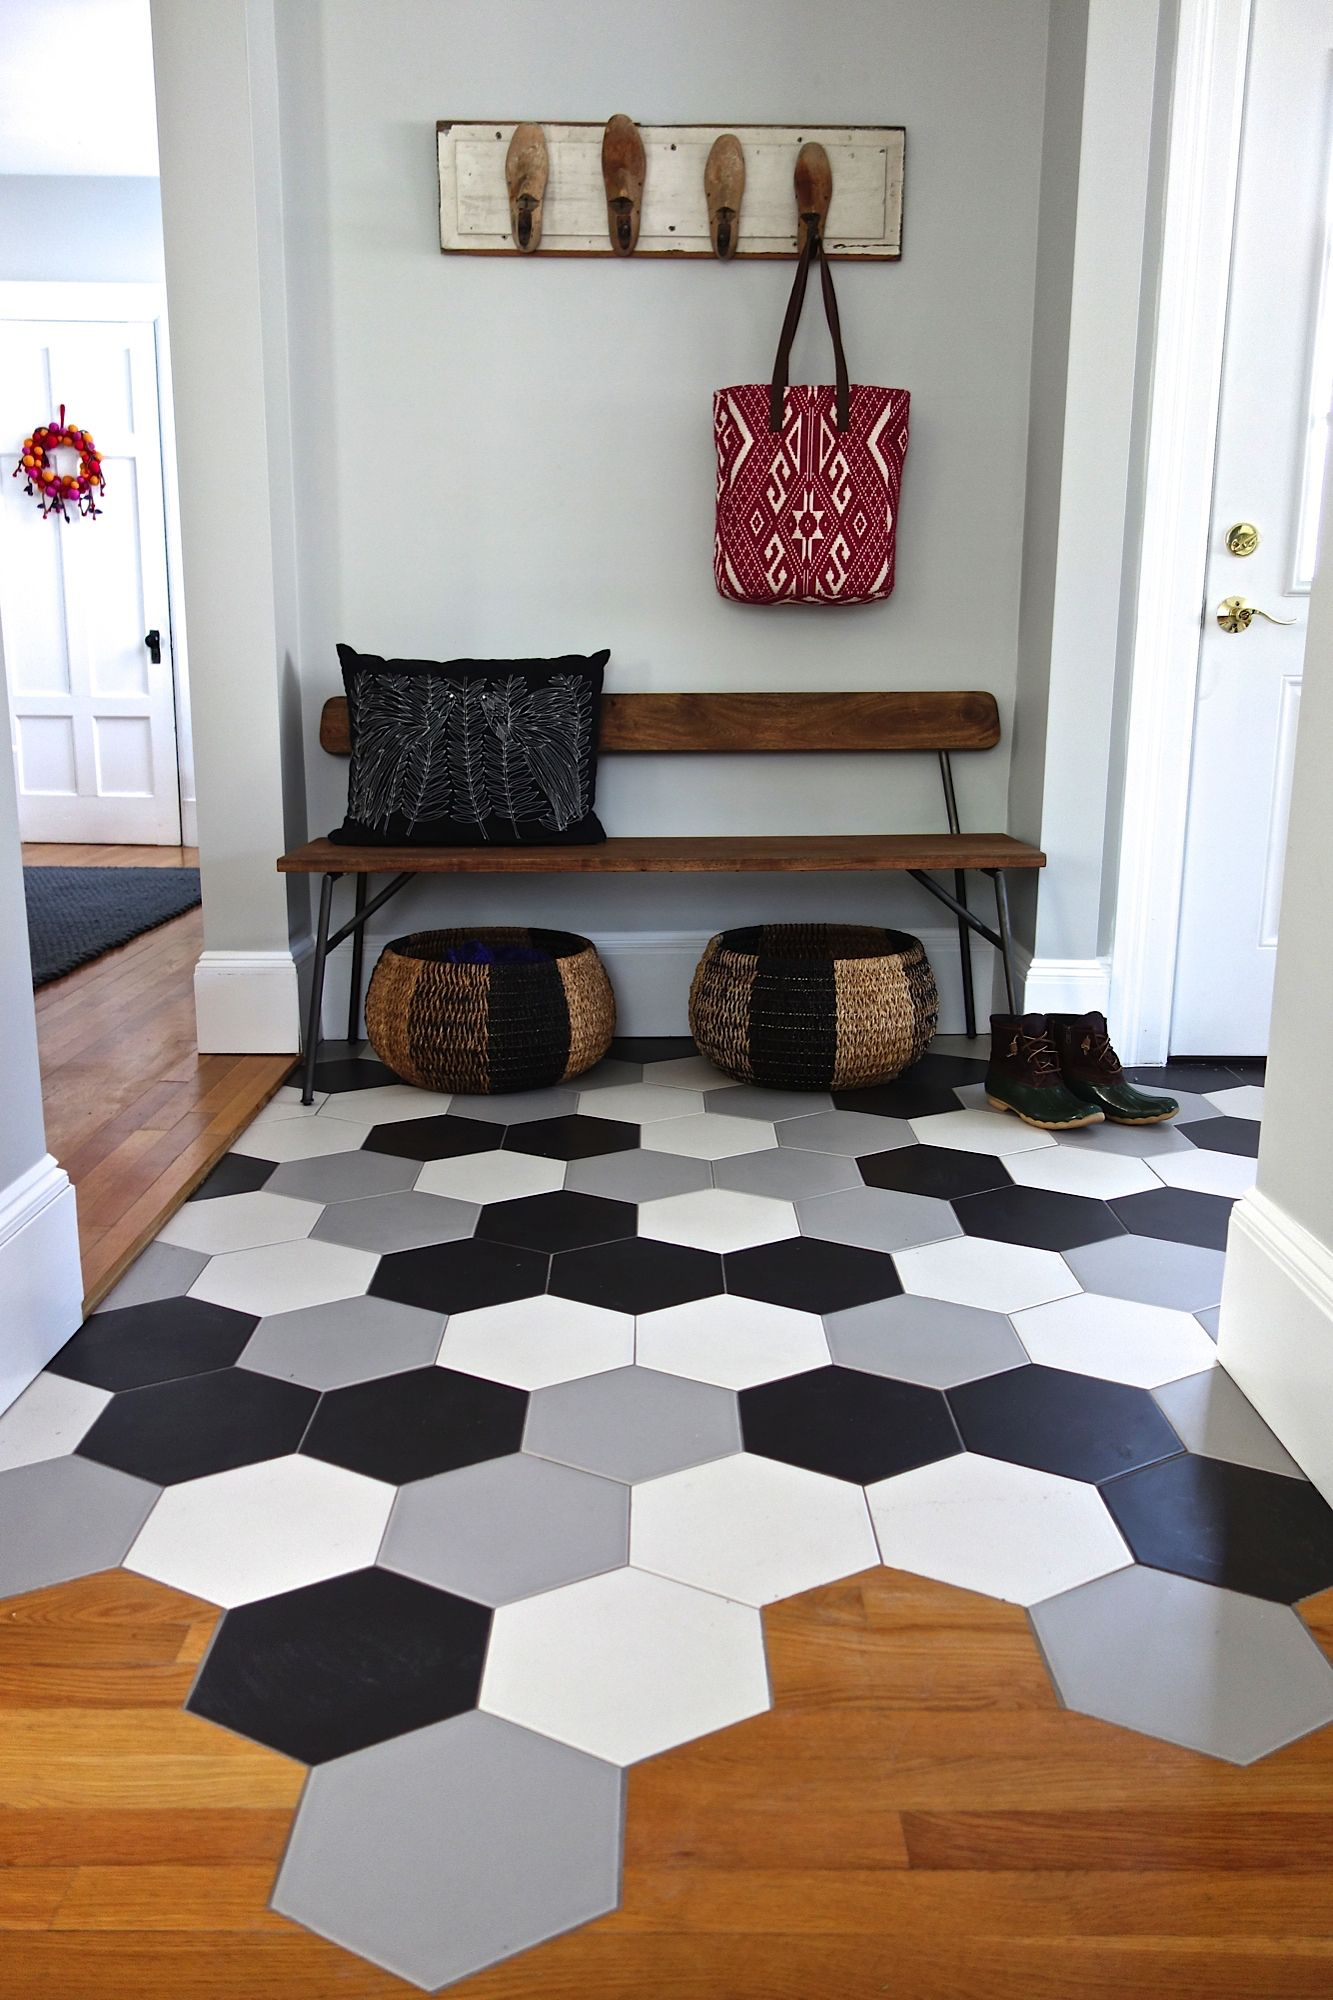 Hex tile mudroom with transition to wood floor kitchen loving the ideal positioning for a tile to wood transitional floor design dailygadgetfo Image collections